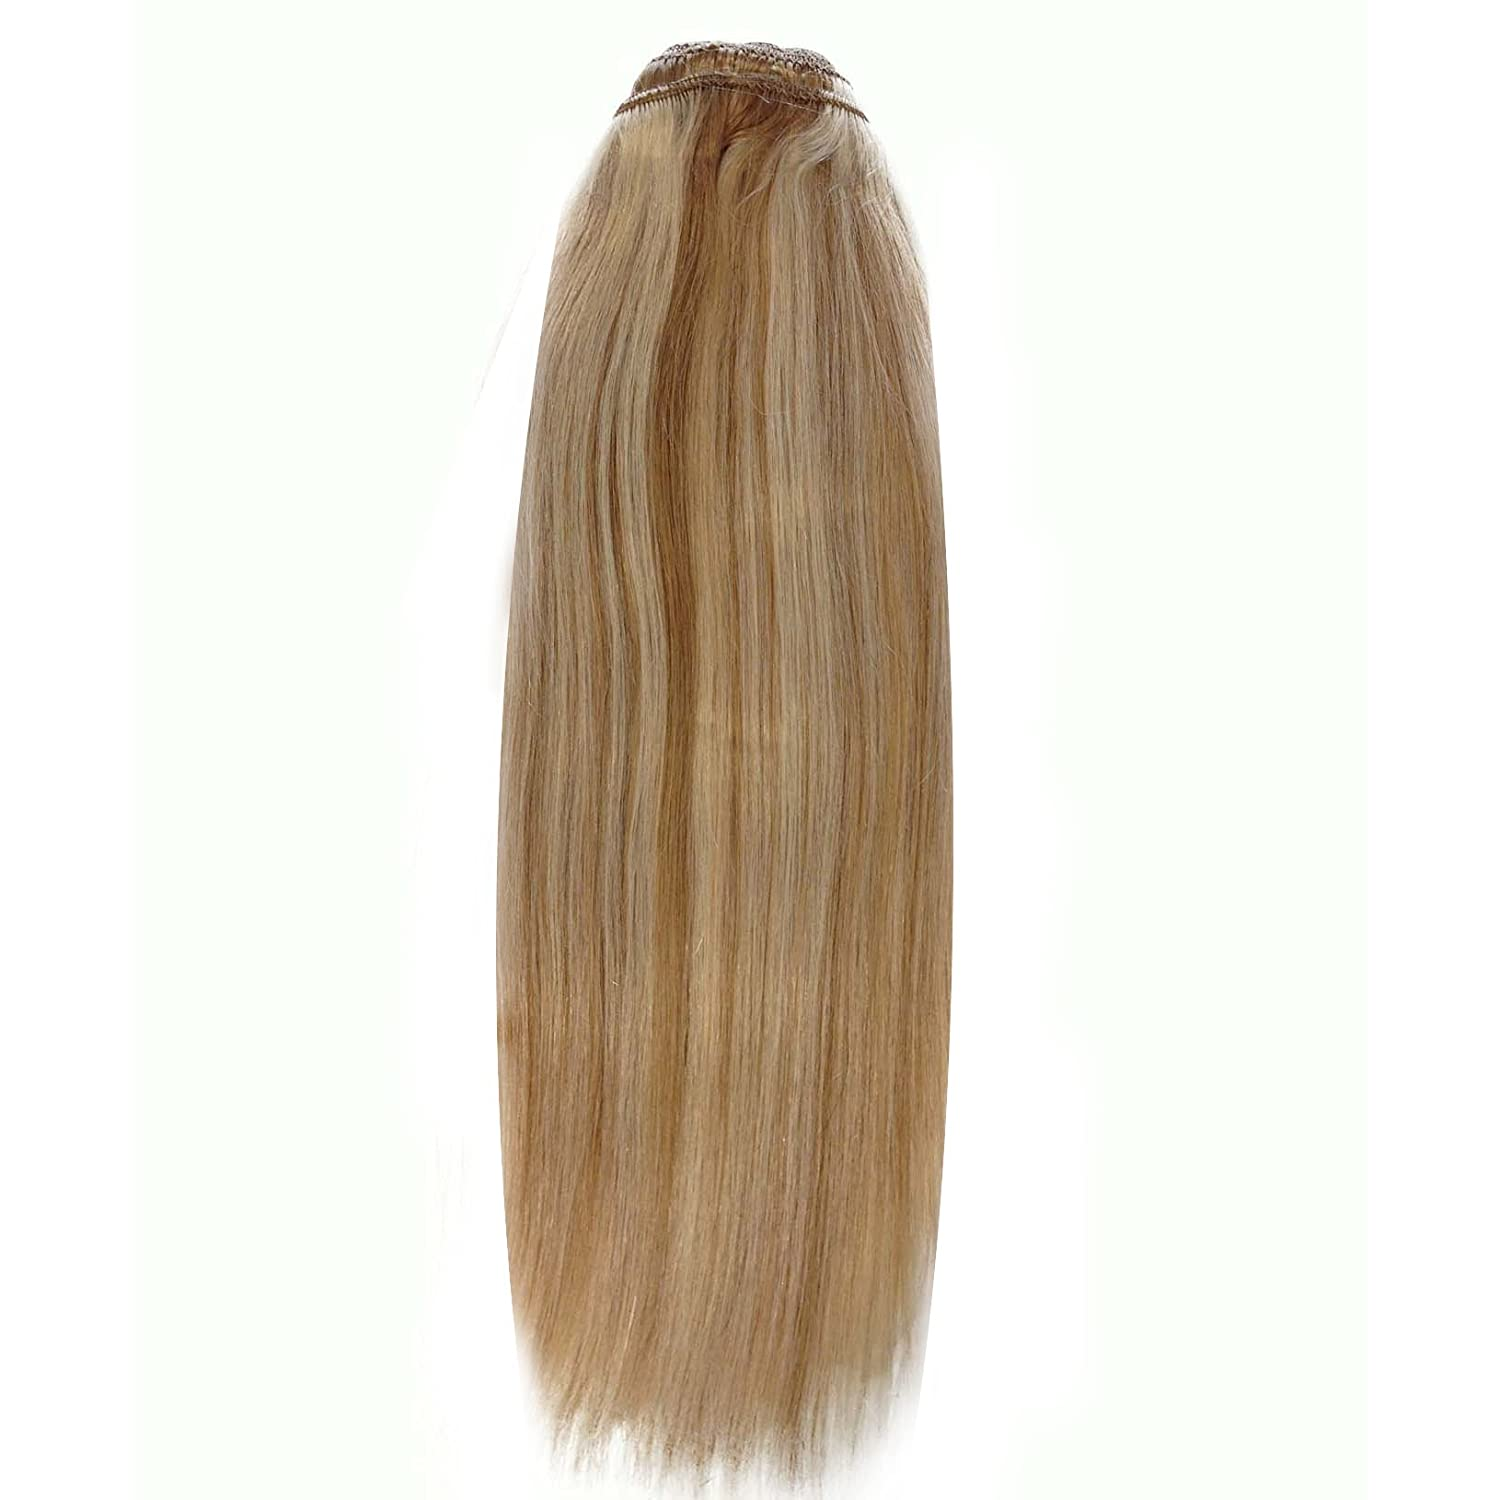 Amazon 22 inch diy clip in human hair extensions 27613 amazon 22 inch diy clip in human hair extensions 27613 mixed blonde hair weft and clips included to make your own extensions beauty pmusecretfo Choice Image